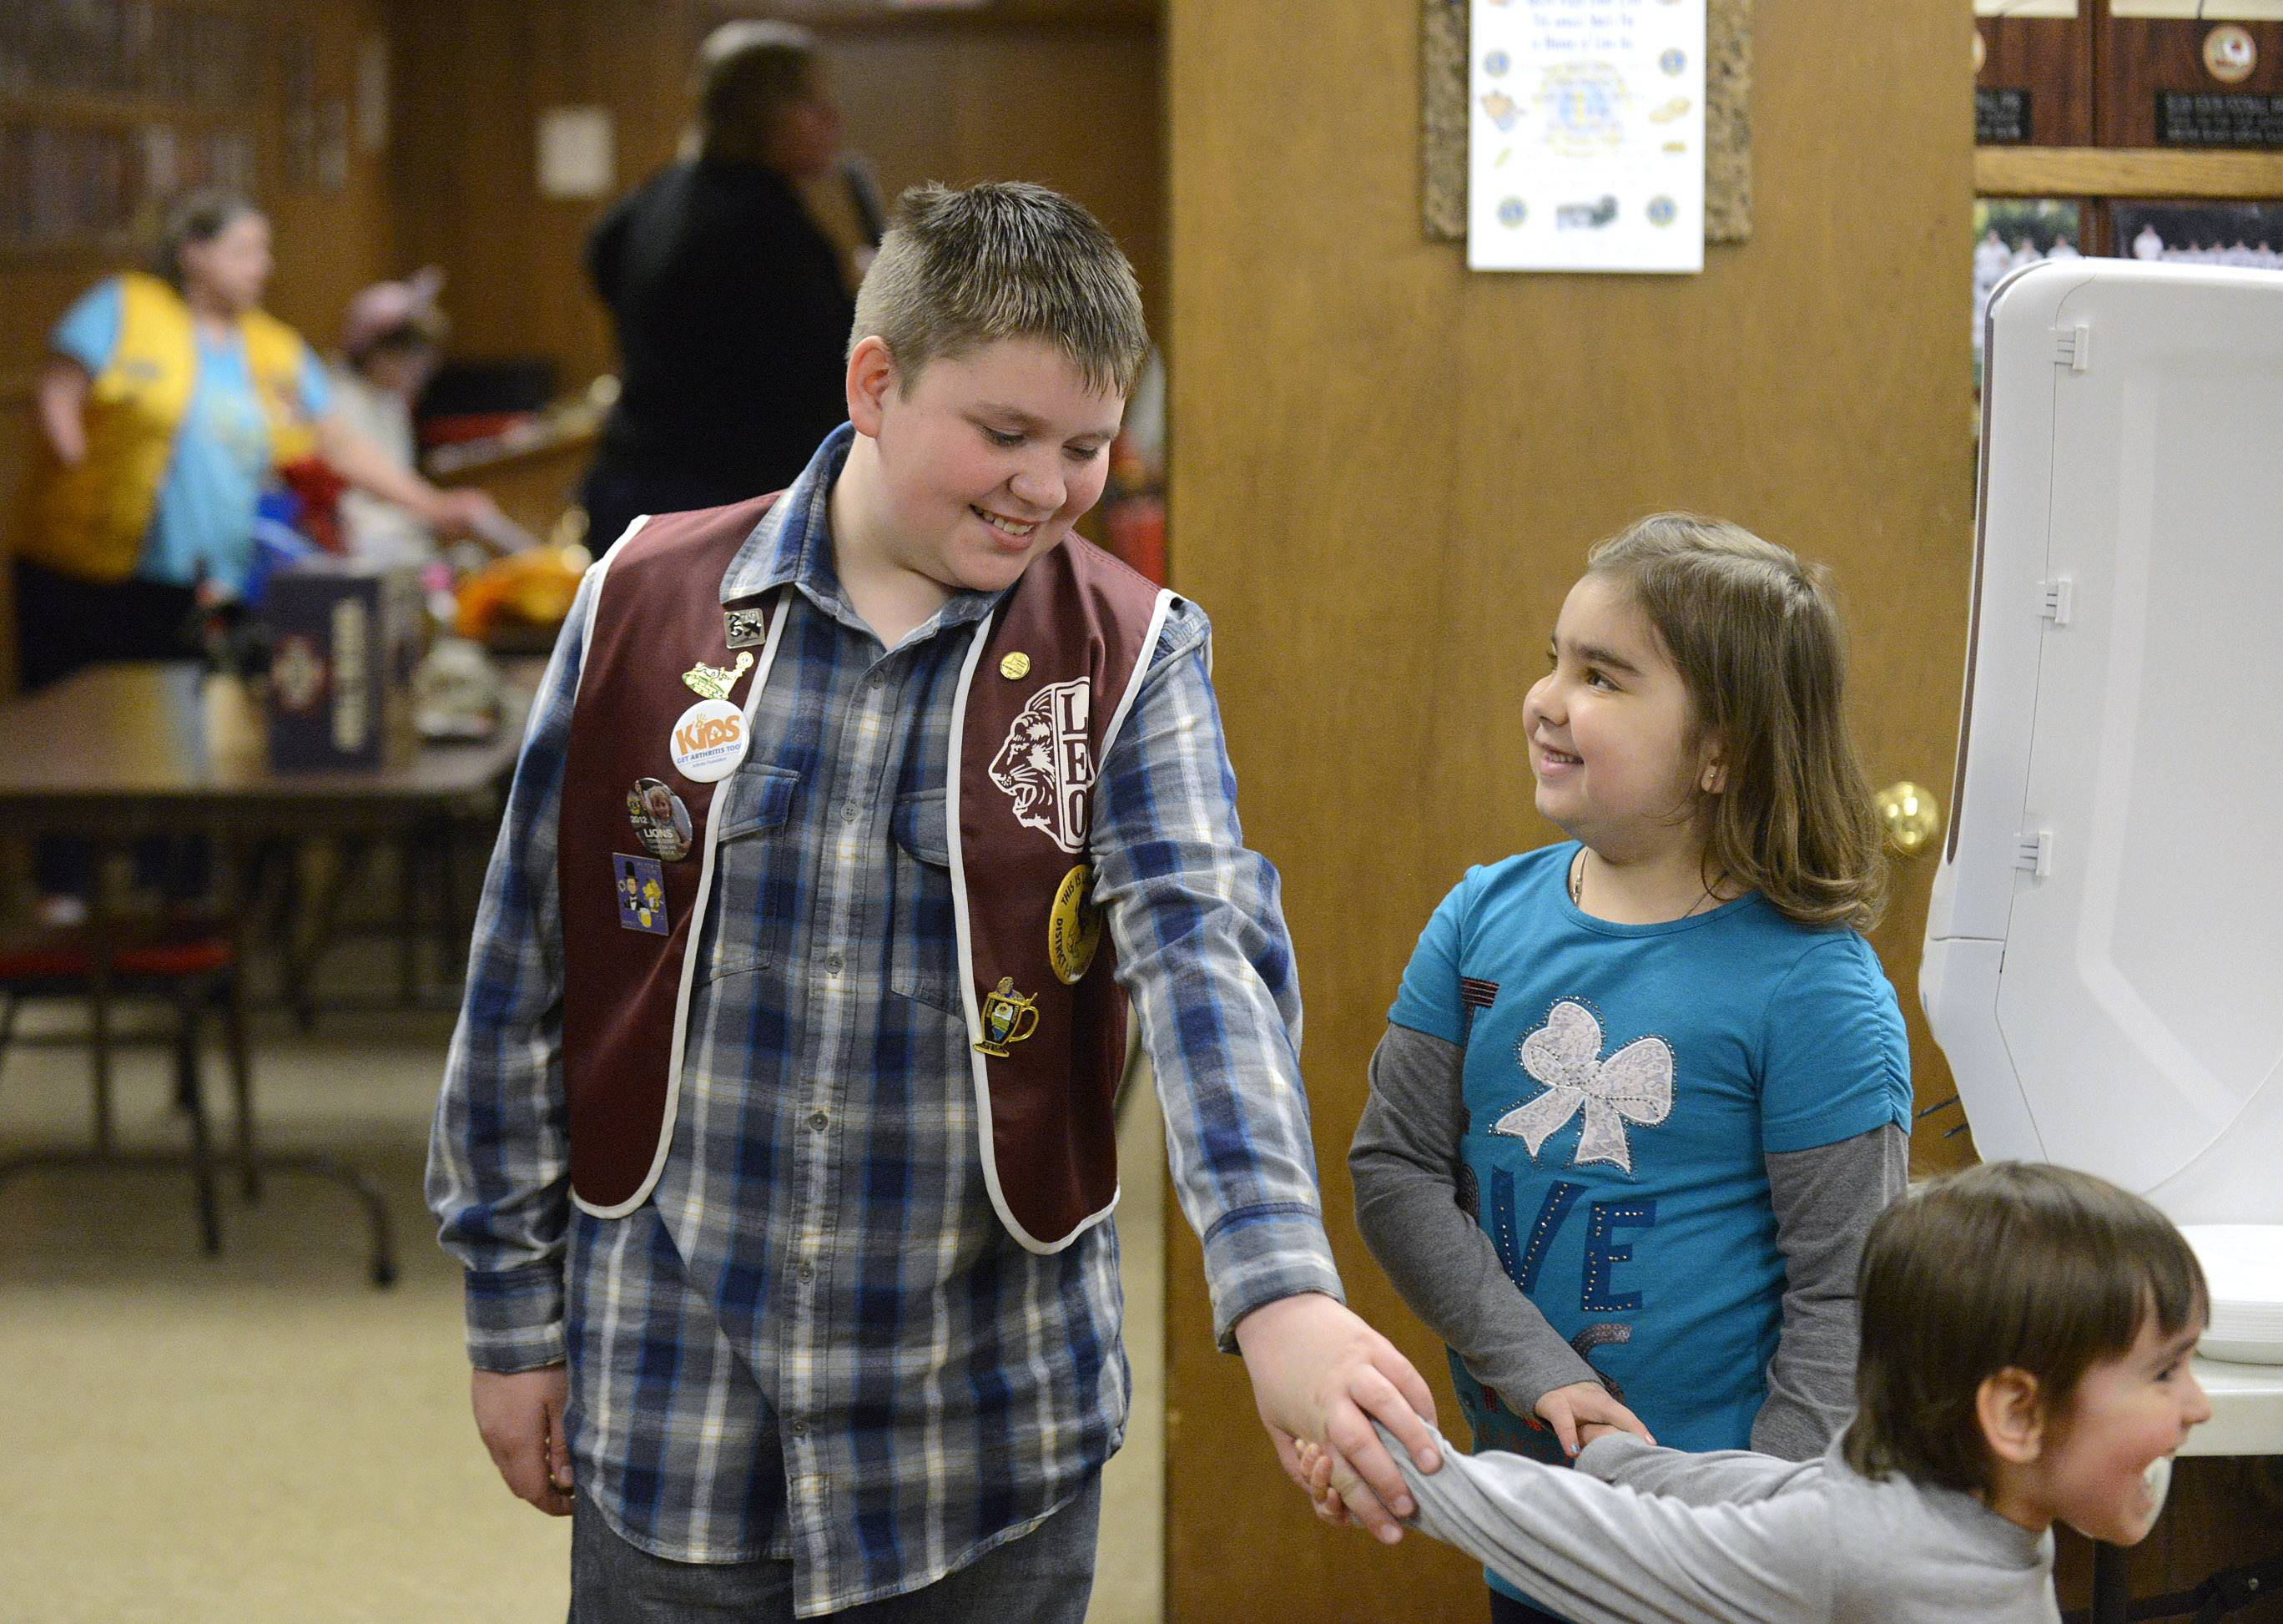 Maria Serban, 6, smiles up at Dylan Snyder, 11, as they play with her younger brother, Victor, 3½, after Dylan presented Maria and her mother, Elena, with a check for close to $4,000 at the South Elgin Lions Club on Wednesday, April 2. All live in South Elgin. Maria, a first-grader at Willard Elementary School, has a rare form of arthritis, and she's been sick the past few months. Dylan, a fifth-grader at the school, raised funds with a spaghetti dinner and auction last month at the Lions Club where his great grandfather, Leo Snyder, is a member.